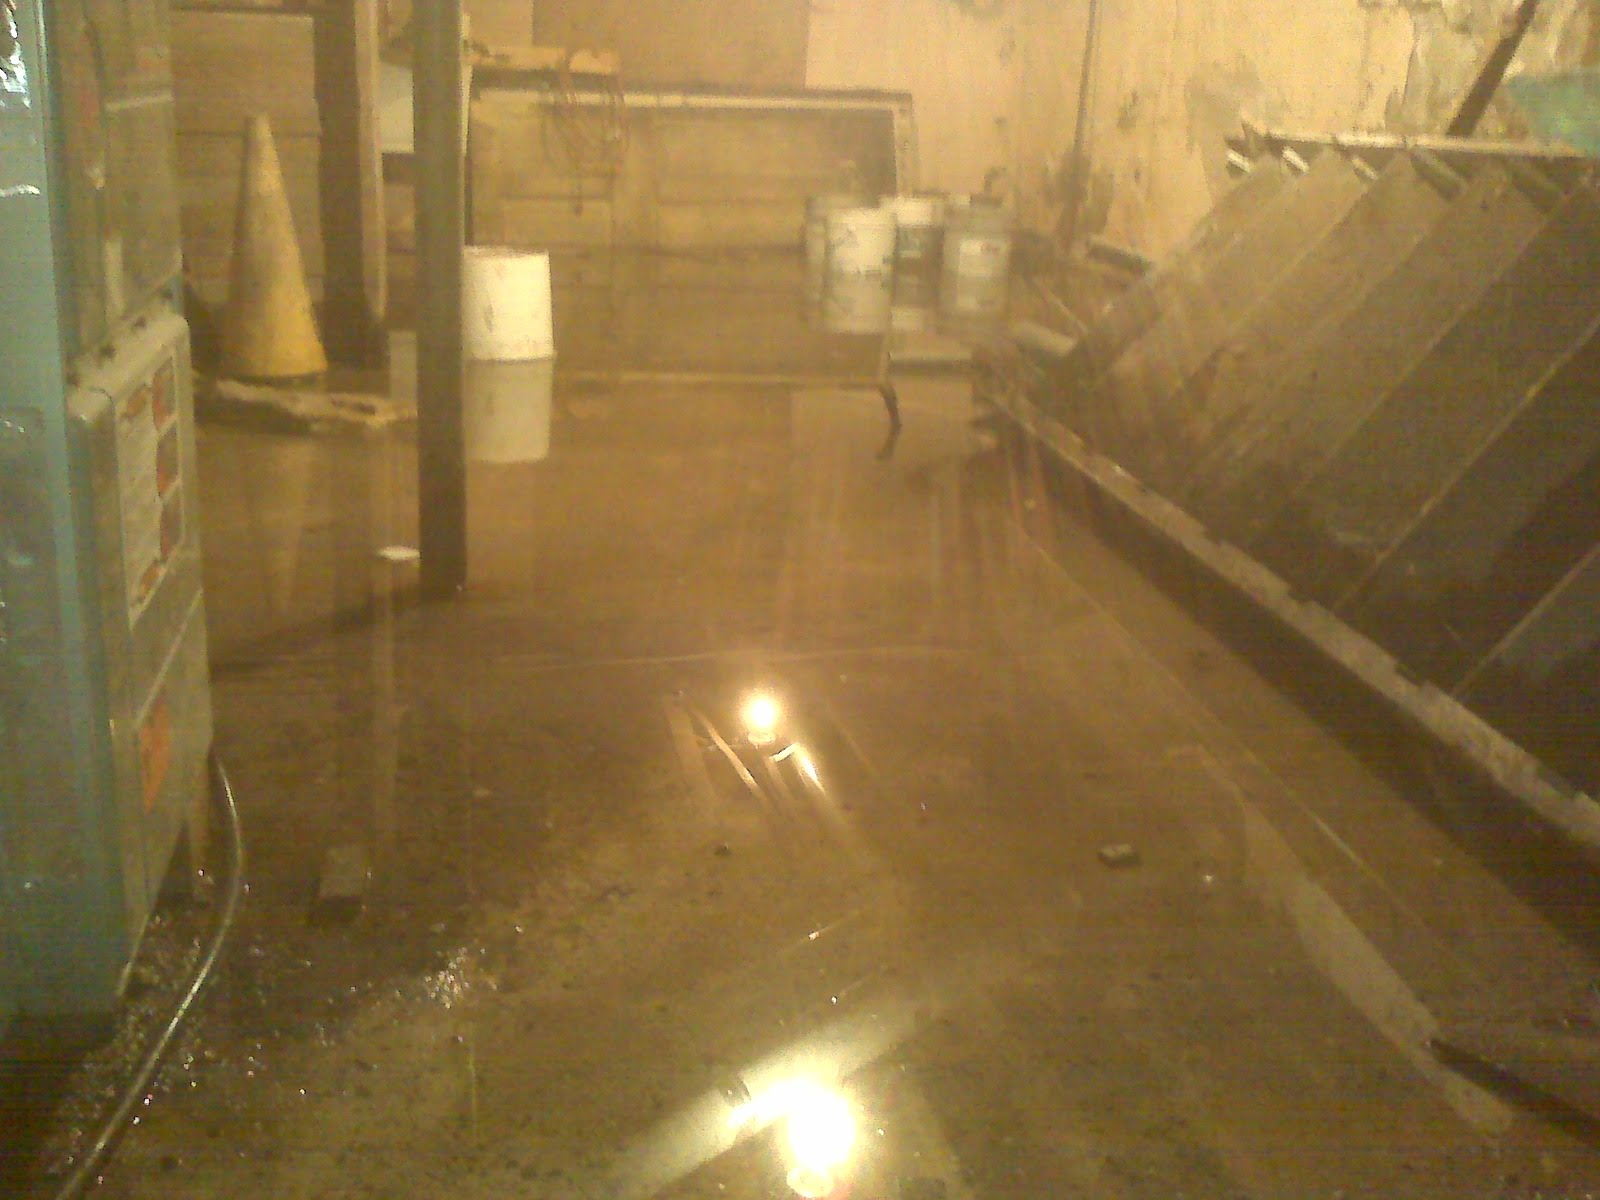 Shel Water In The Basement